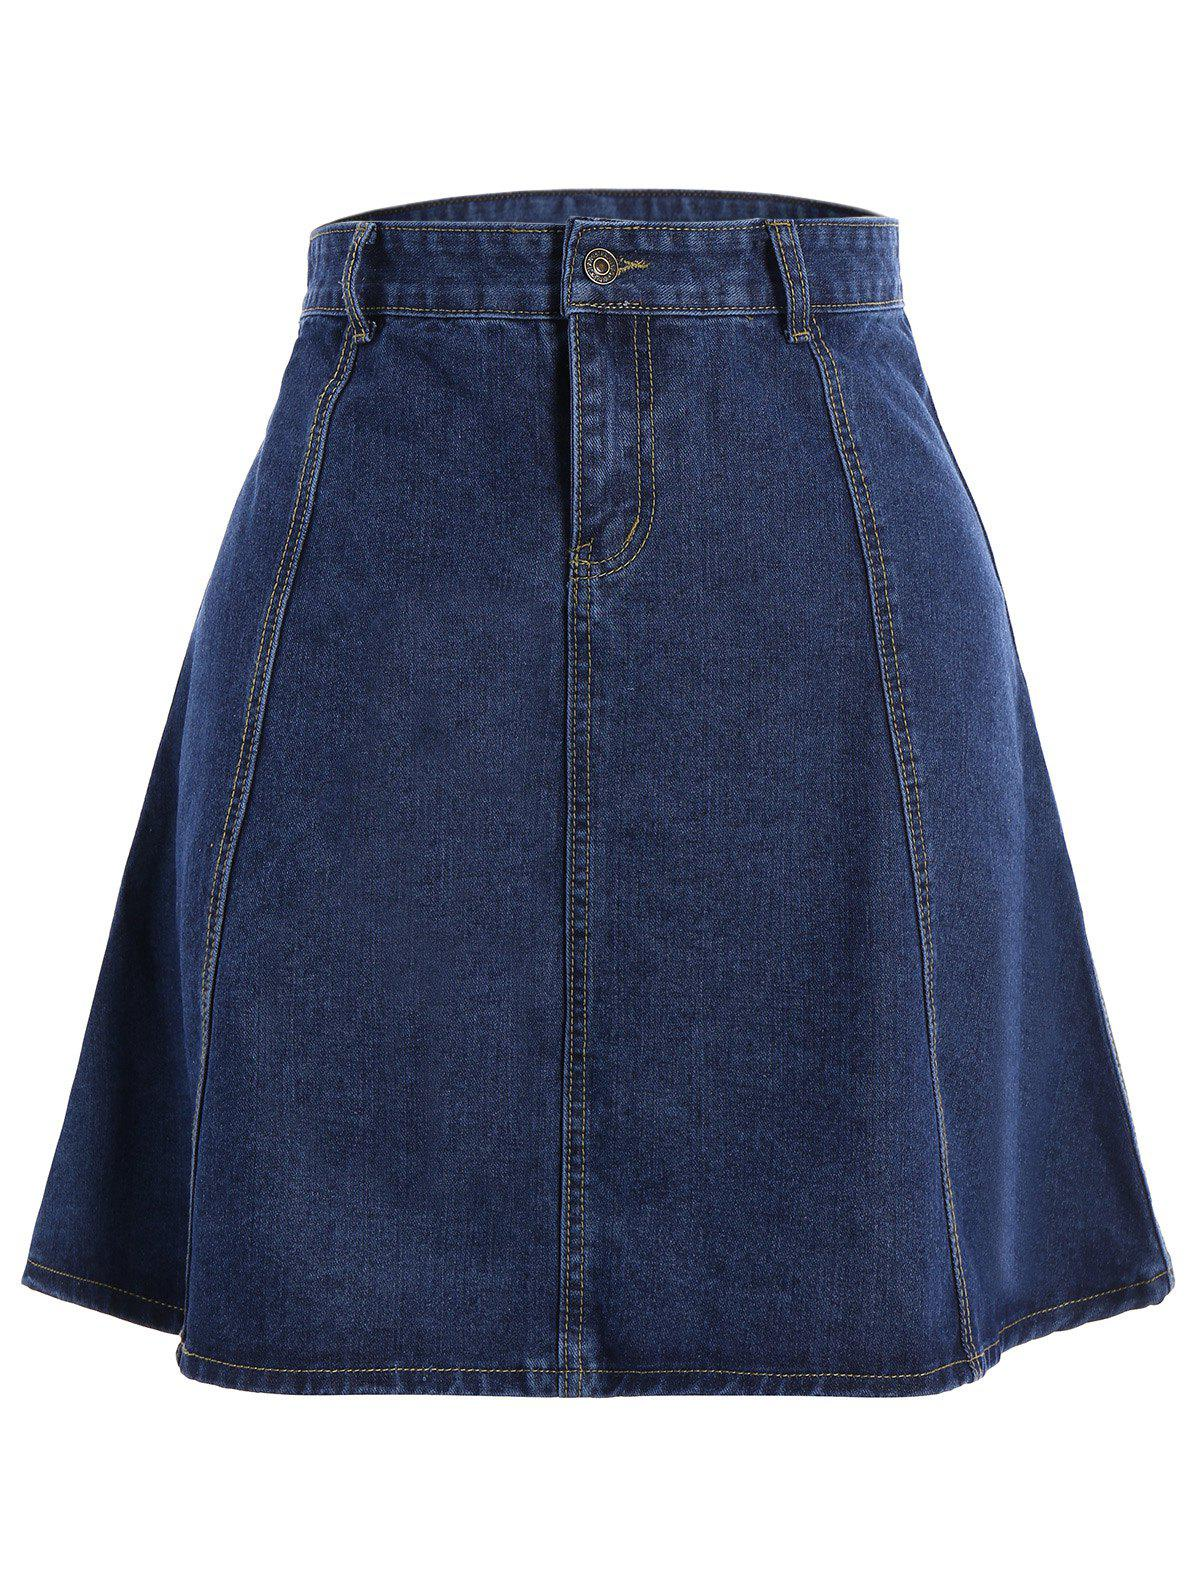 Knee Length Jean SkirtWOMEN<br><br>Size: XL; Color: BLUE; Material: Jean,Polyester; Length: Knee-Length; Silhouette: A-Line; Pattern Type: Solid; Season: Fall,Spring,Summer; With Belt: No; Weight: 0.530kg; Package Contents: 1 x Skirt;